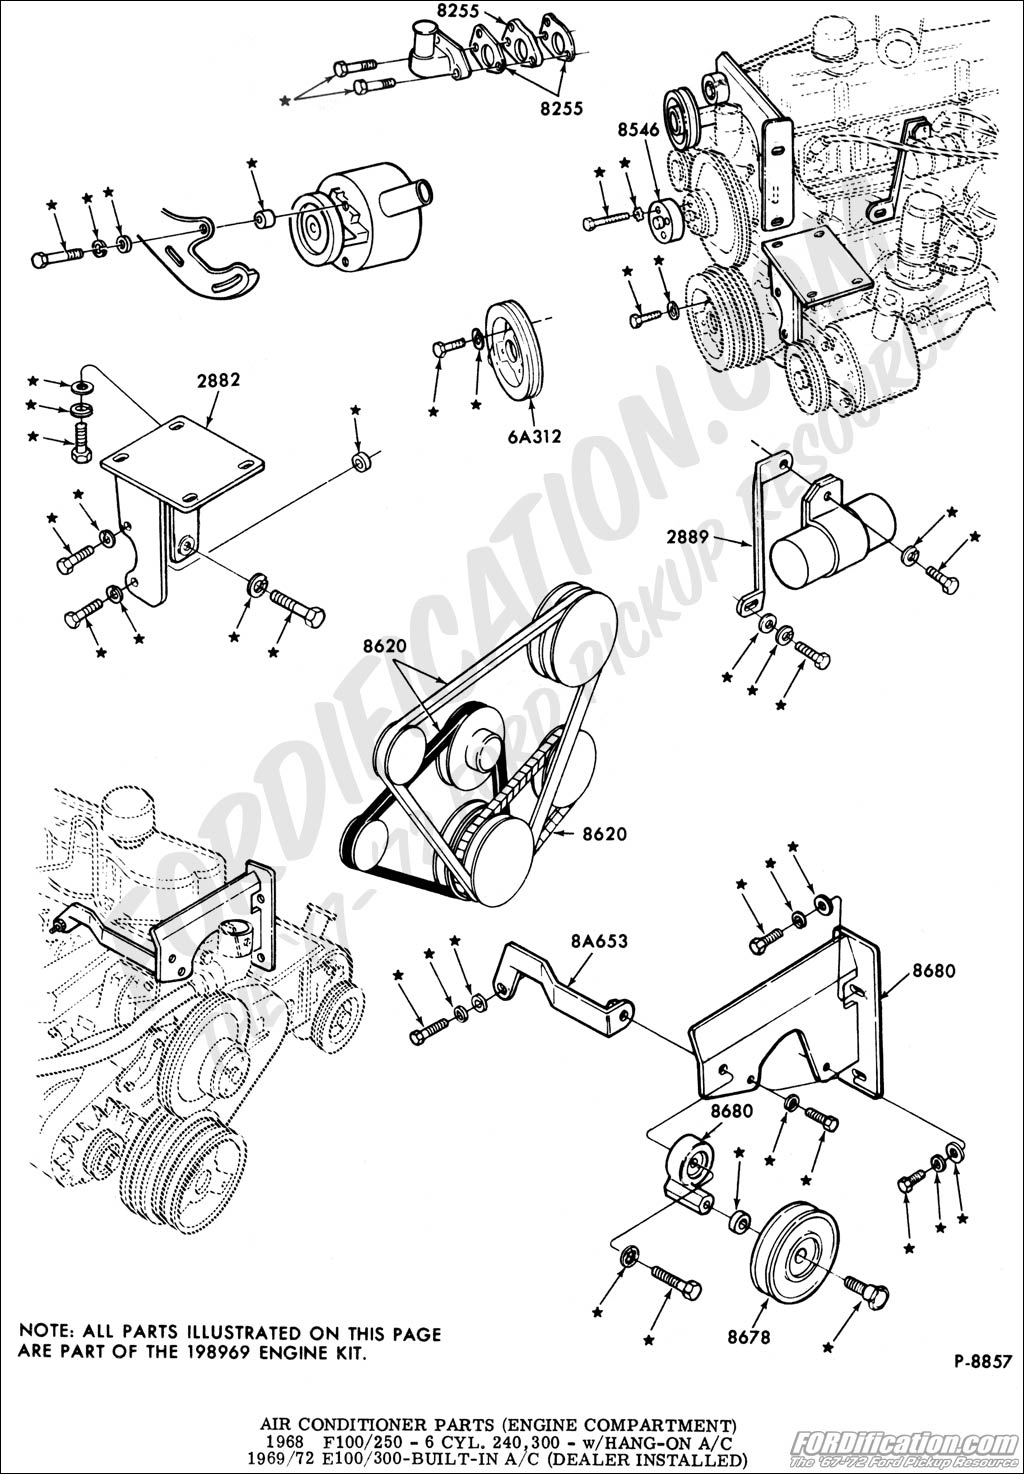 Ac bracket for a 1967 f100 300 engine underdash unit page 3 ford rh ford trucks